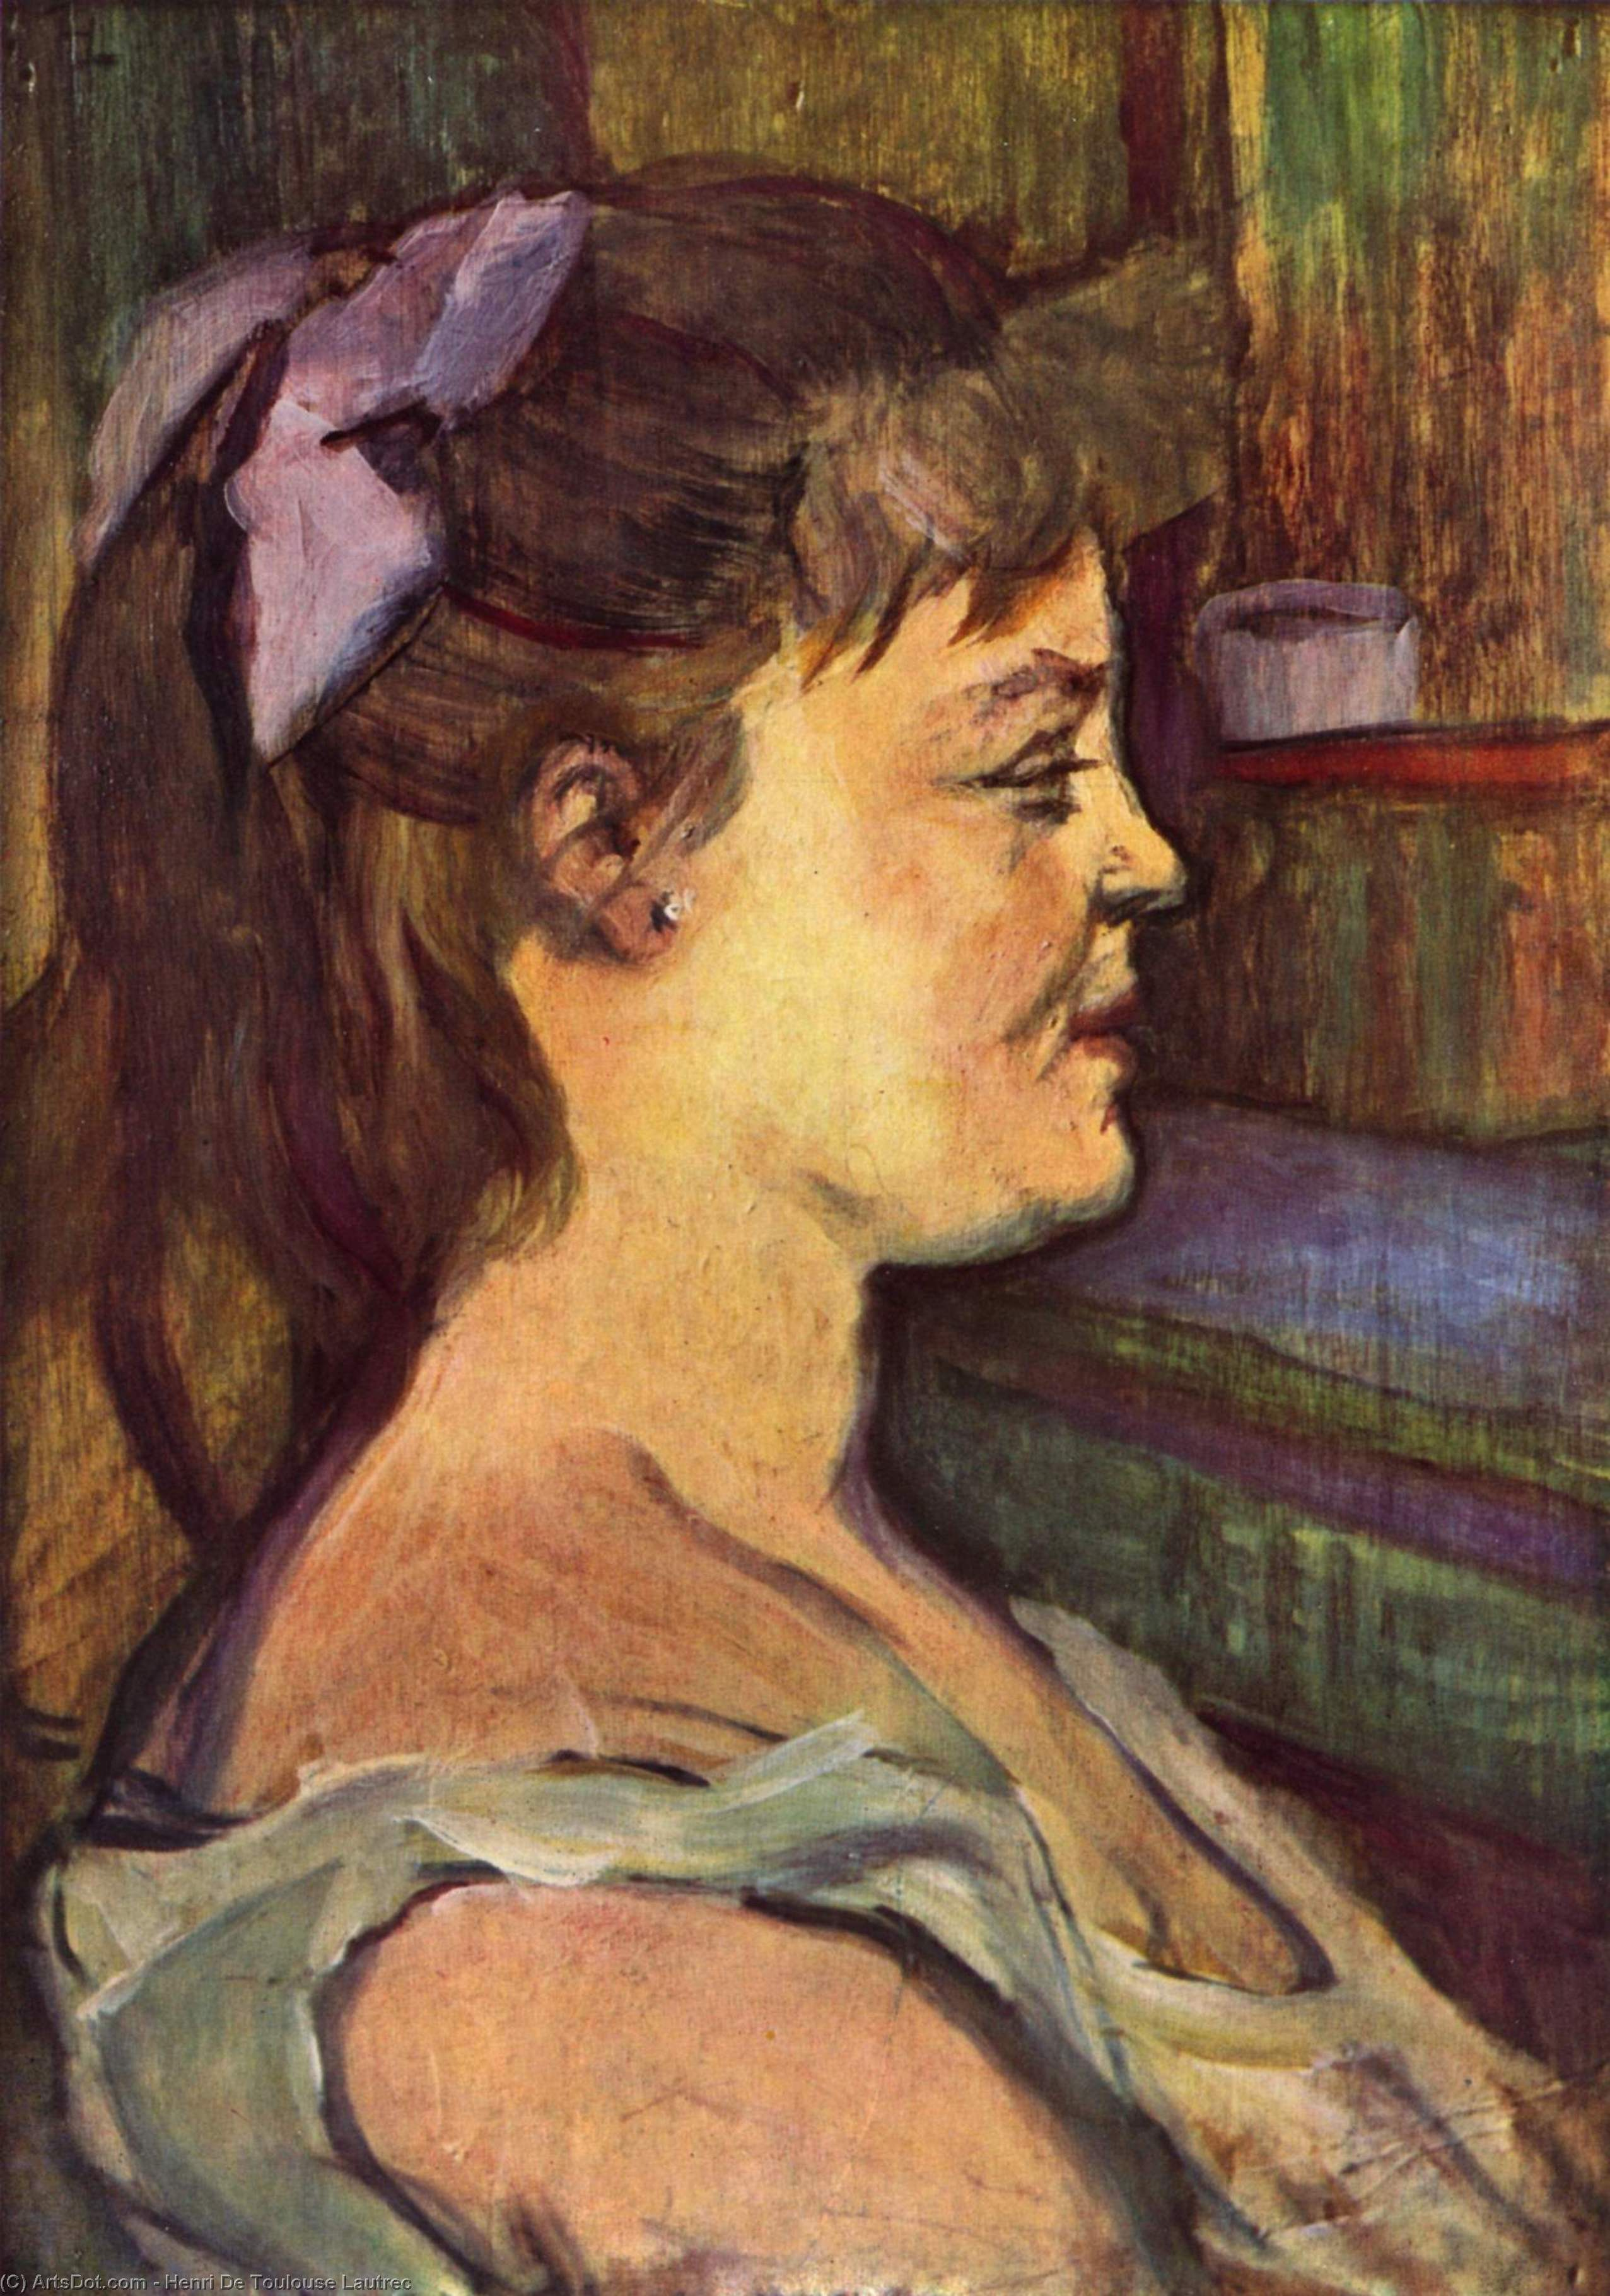 House wife, Oil by Henri De Toulouse Lautrec (1864-1901, France)